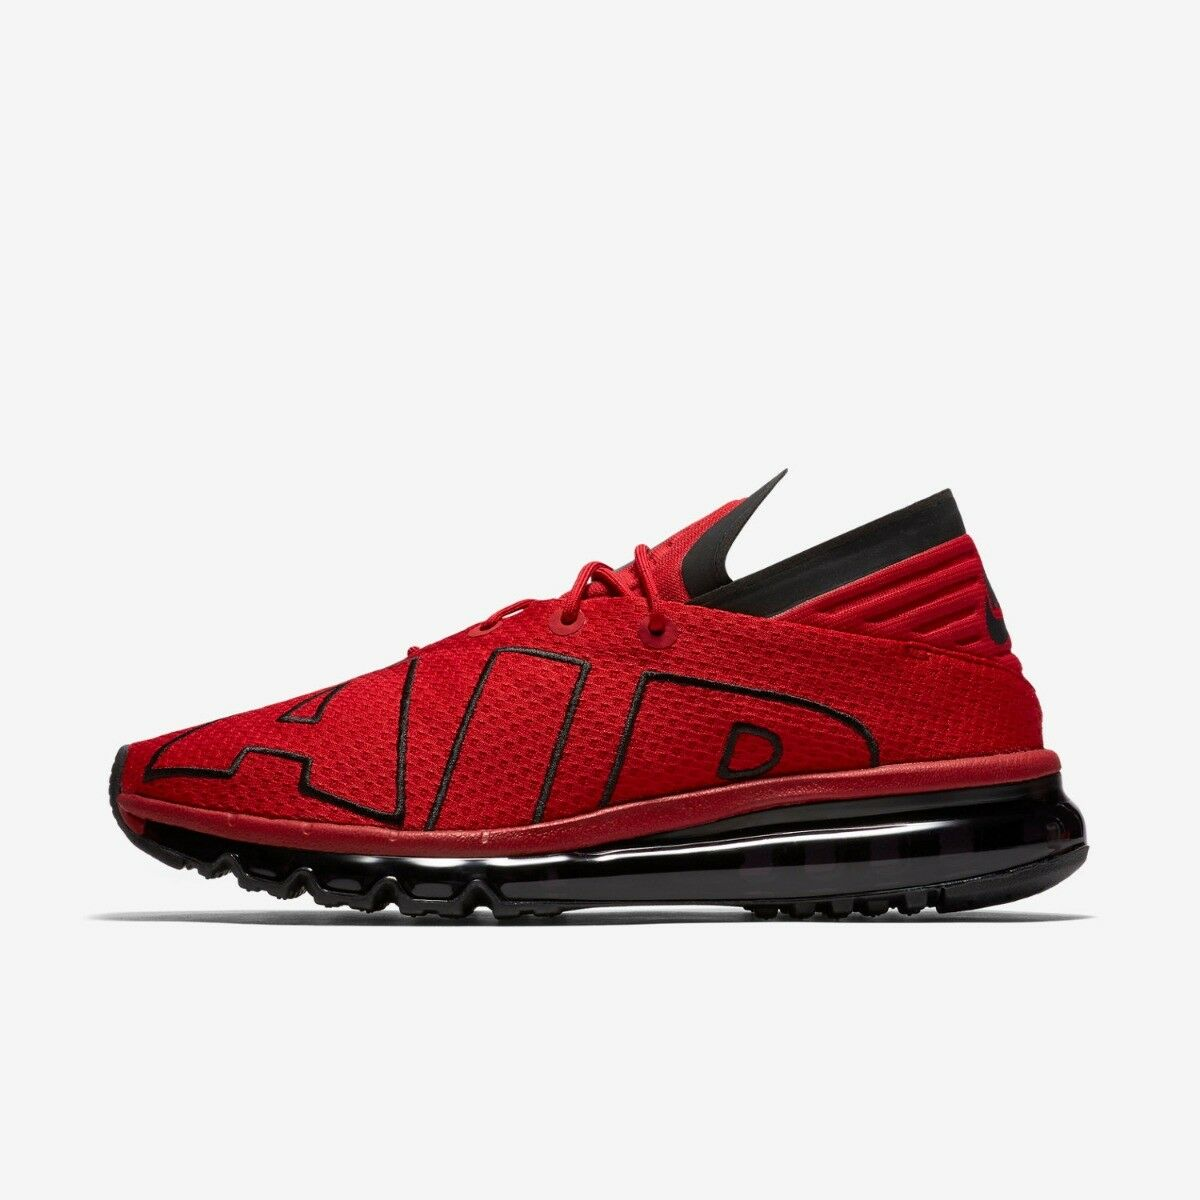 Nike Air Max Flair Mens Running Trainer Shoe Size 7 - 9 Gym Red New